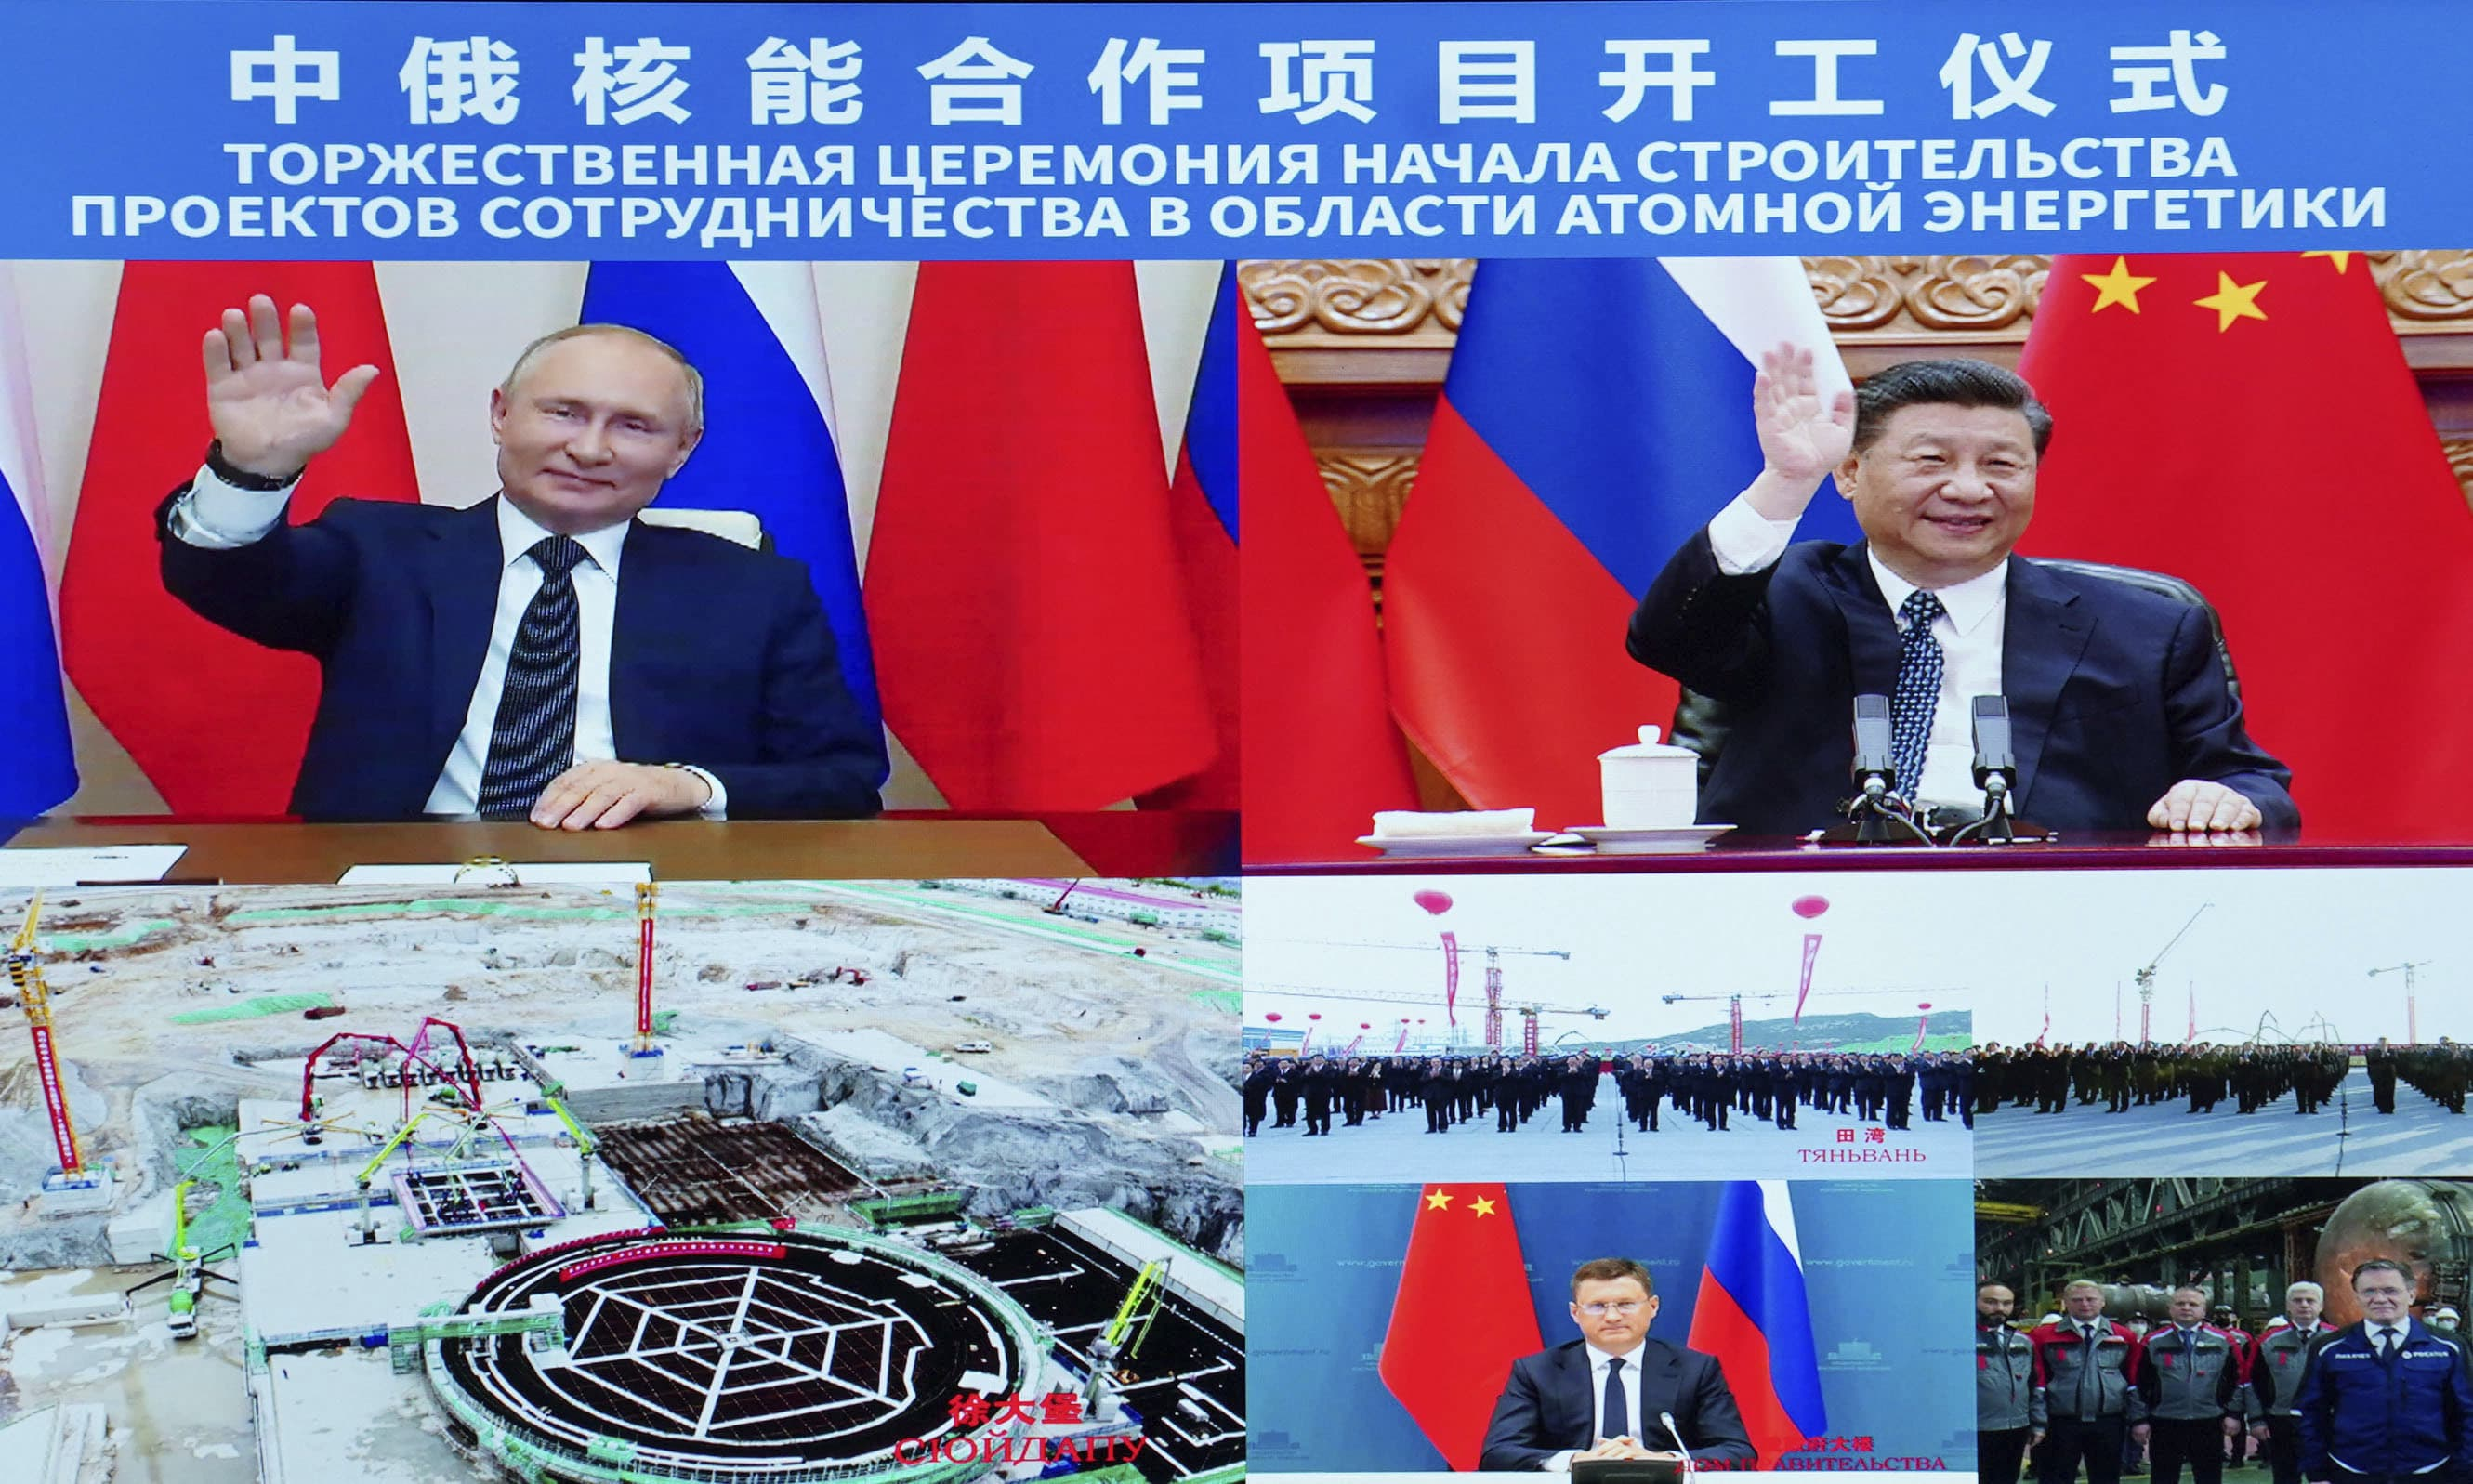 Chinese President Xi Jinping and his Russian counterpart Vladimir Putin are displayed on a screen as they witness the ground-breaking ceremony of a bilateral nuclear energy cooperation project on May 19. — AP